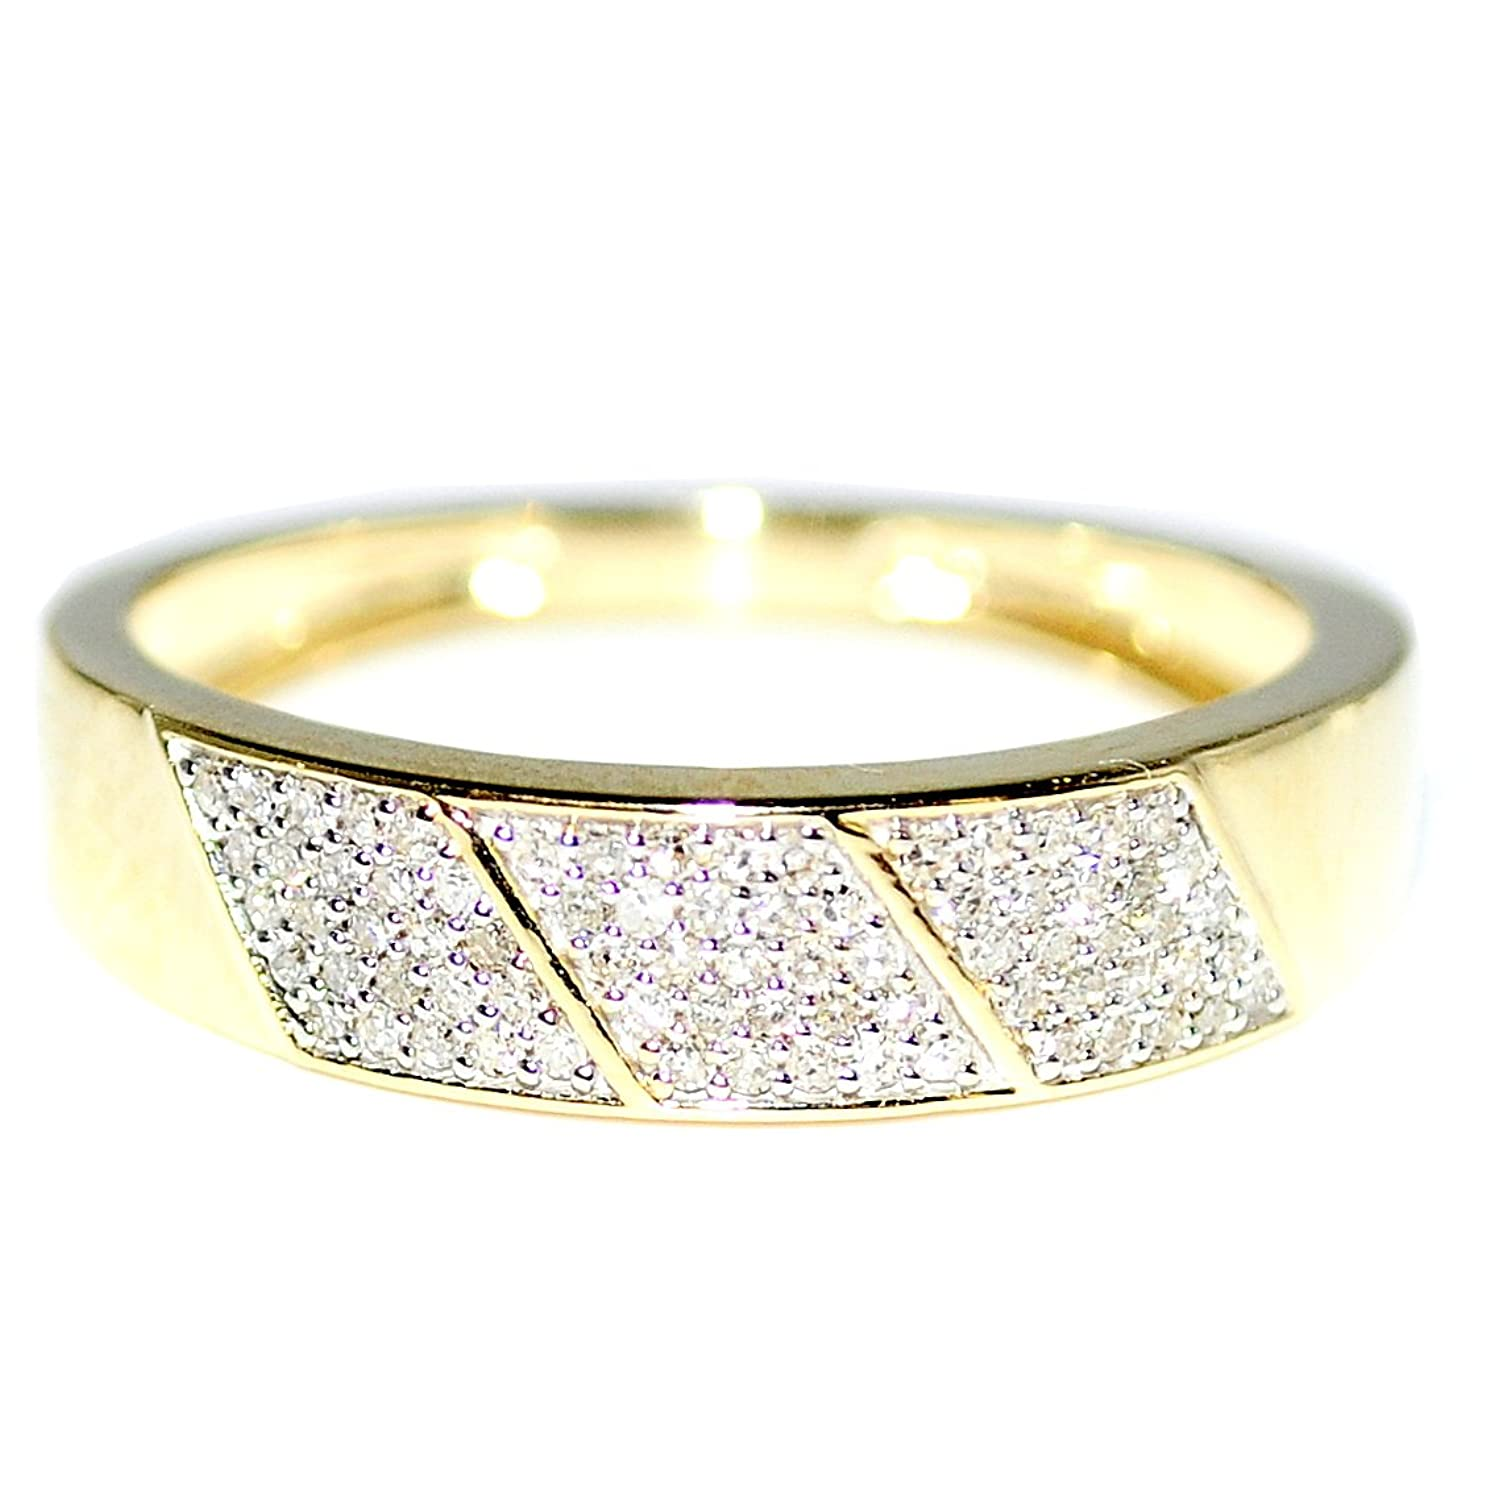 tififi rings st man of made synthetic diamond uk with antique wedding ring inspirational engagement co lovely